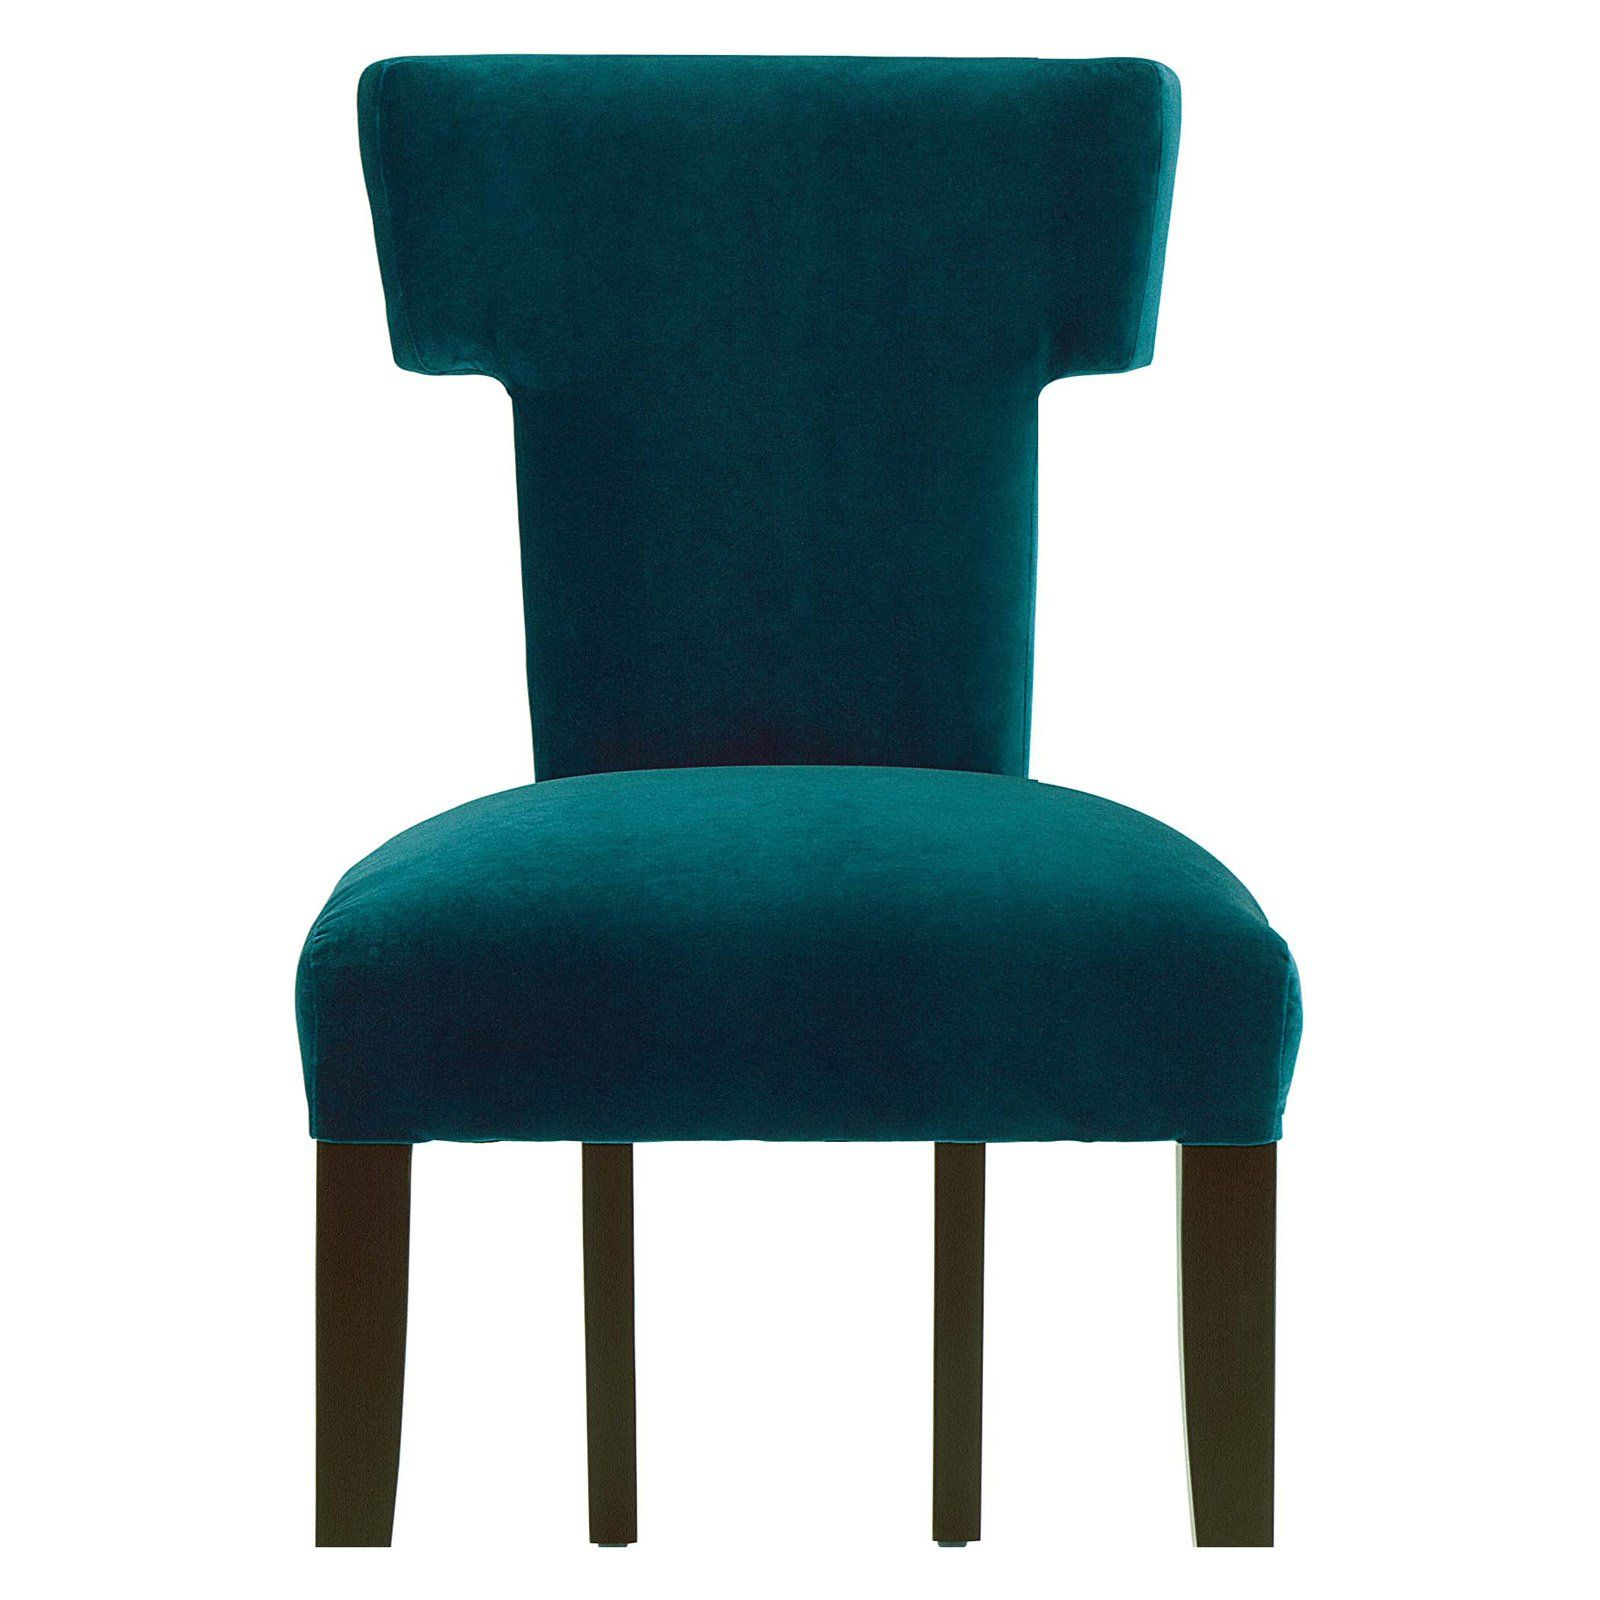 Awesome Color Lazar Aventura Accent Chair Mystere Peacock